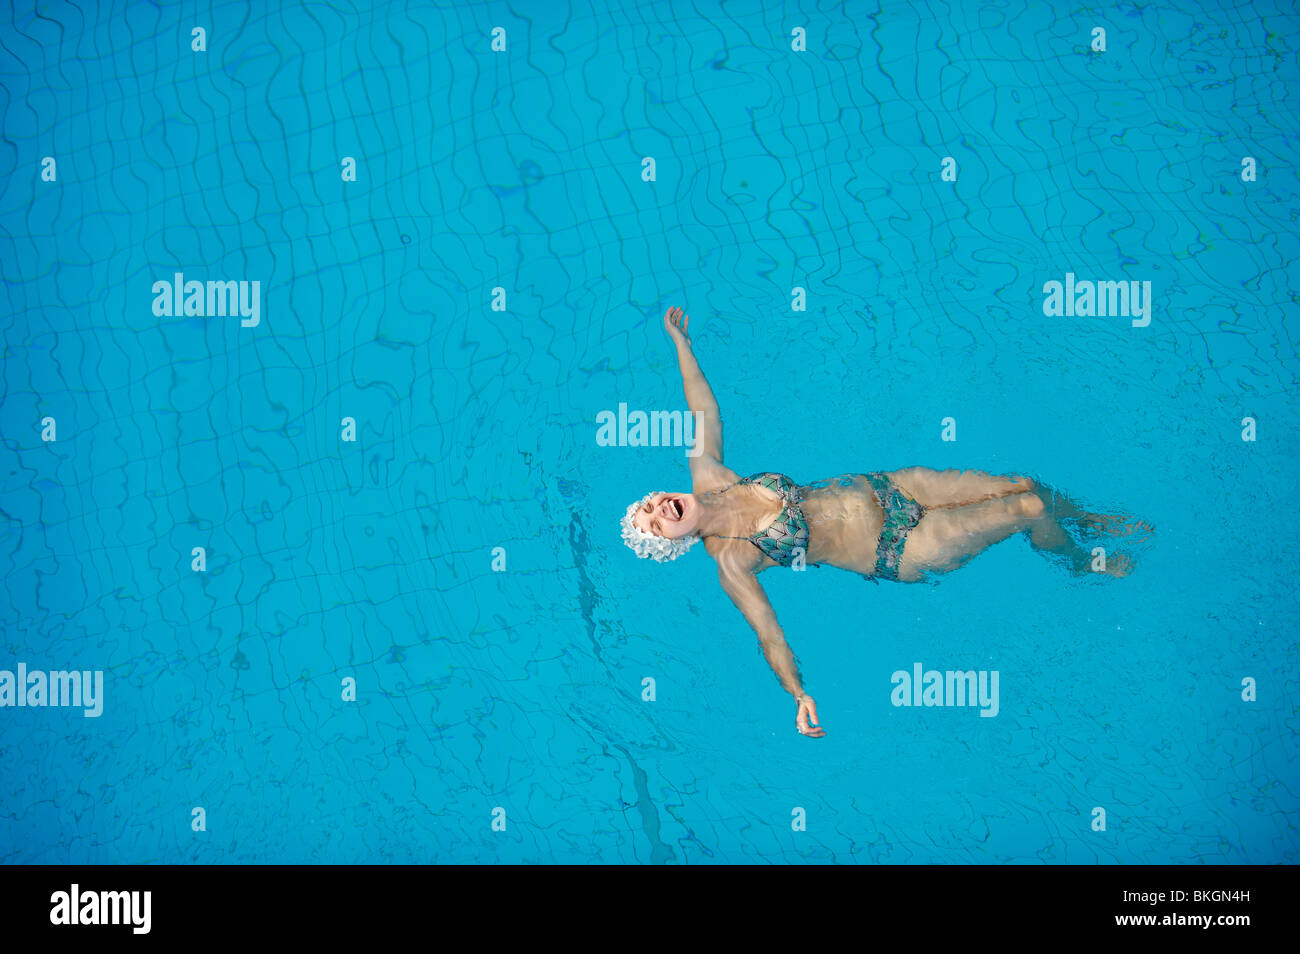 Woman in bikini and hat in a blue swimming pool, lying on back laughing with arms outstretched. - Stock Image